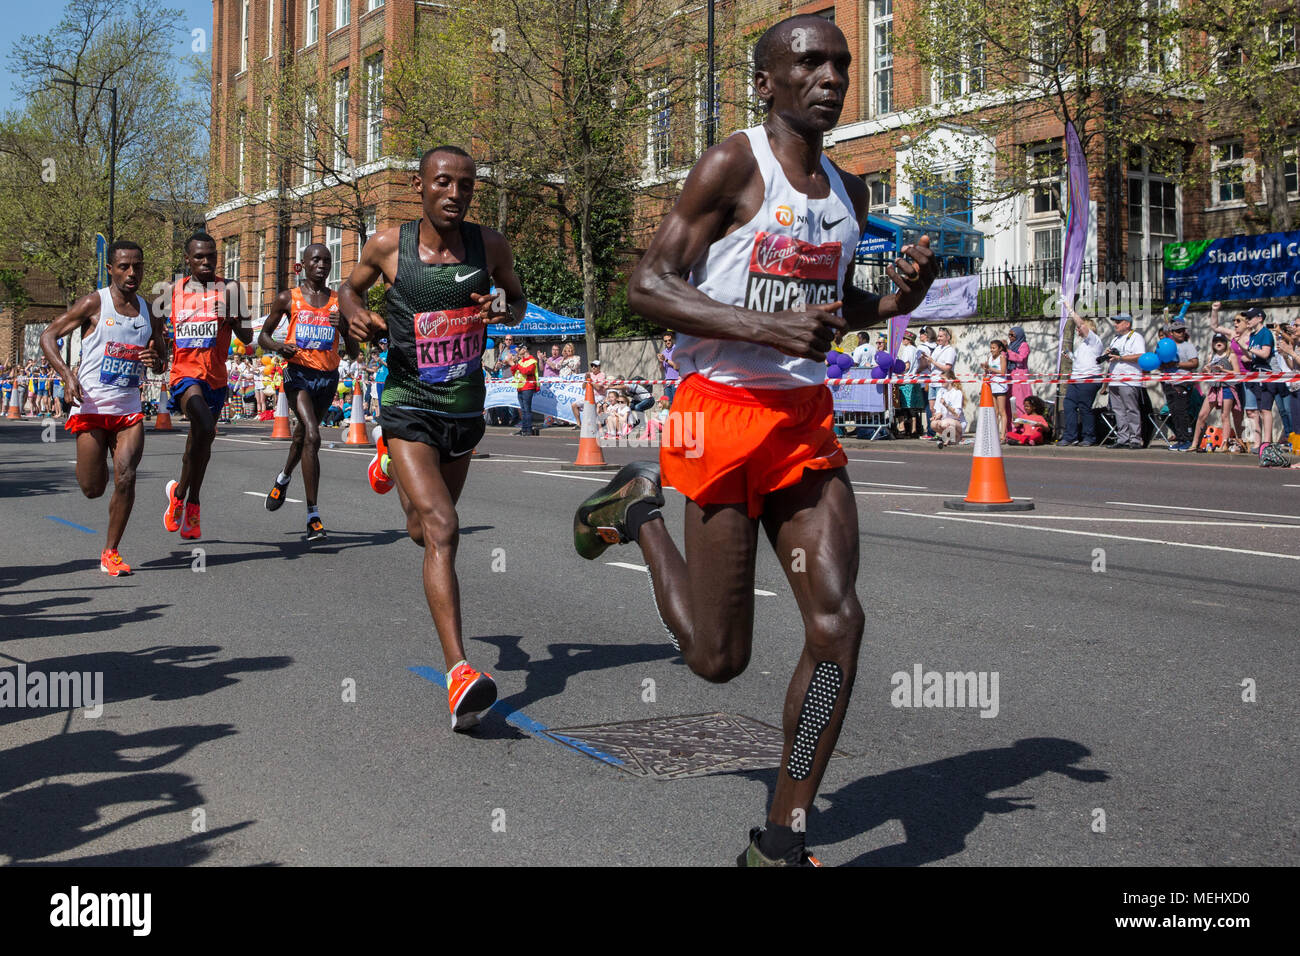 London, UK. 22nd April, 2018. Eliud Kipchoge of Kenya and Tola Shura Kitata of Ethiopia, who finished first and second in the men's event, compete in the 2018 Virgin Money London Marathon, followed by Kenenisa Bekele of Ethiopia and Bedan Karoki and Daniel Wanjiru of Kenya. Credit: Mark Kerrison/Alamy Live News Stock Photo